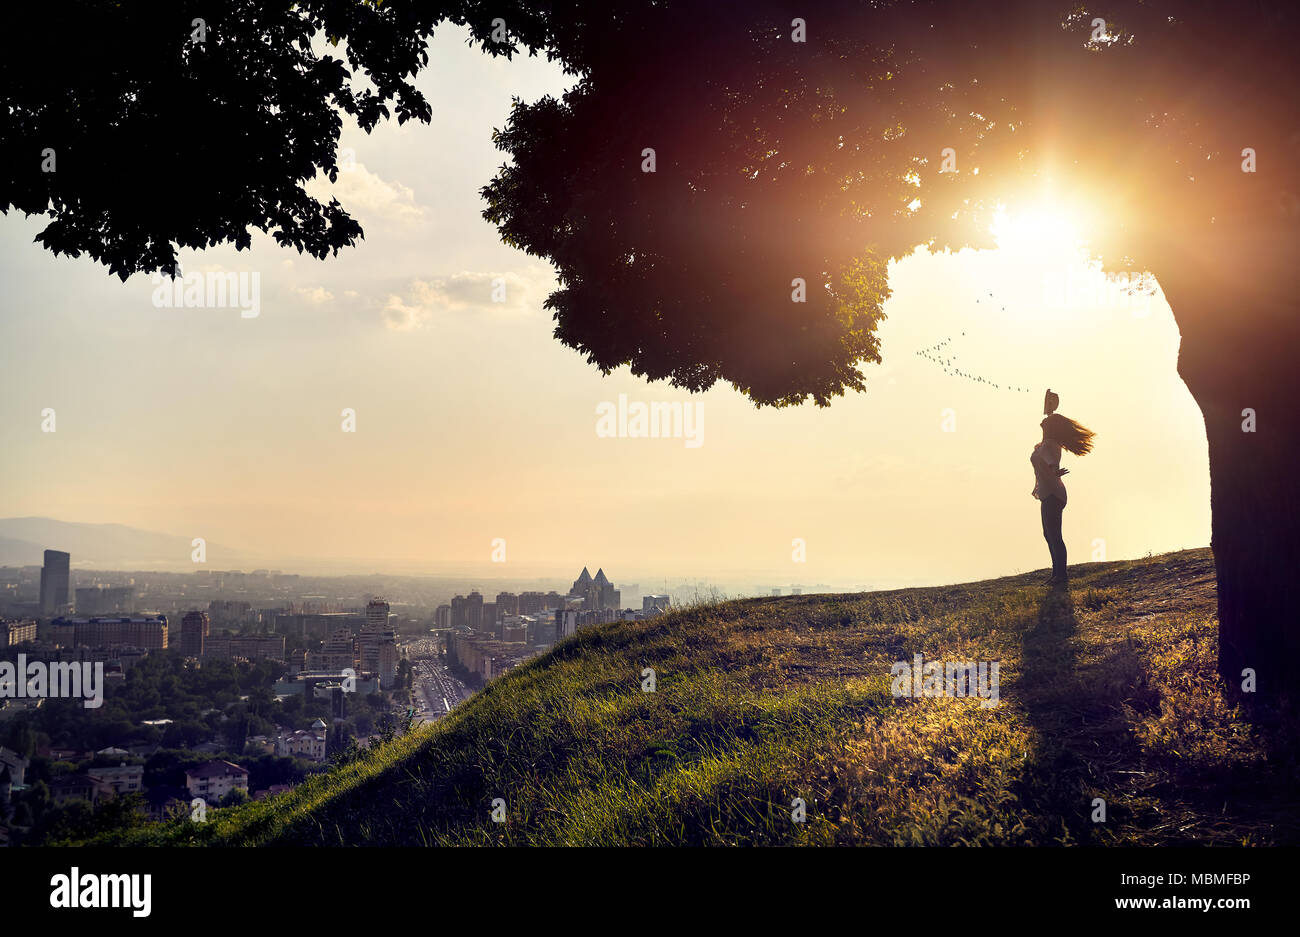 Woman in silhouette with hat rising hand at the sunset city view background. City life concept. - Stock Image